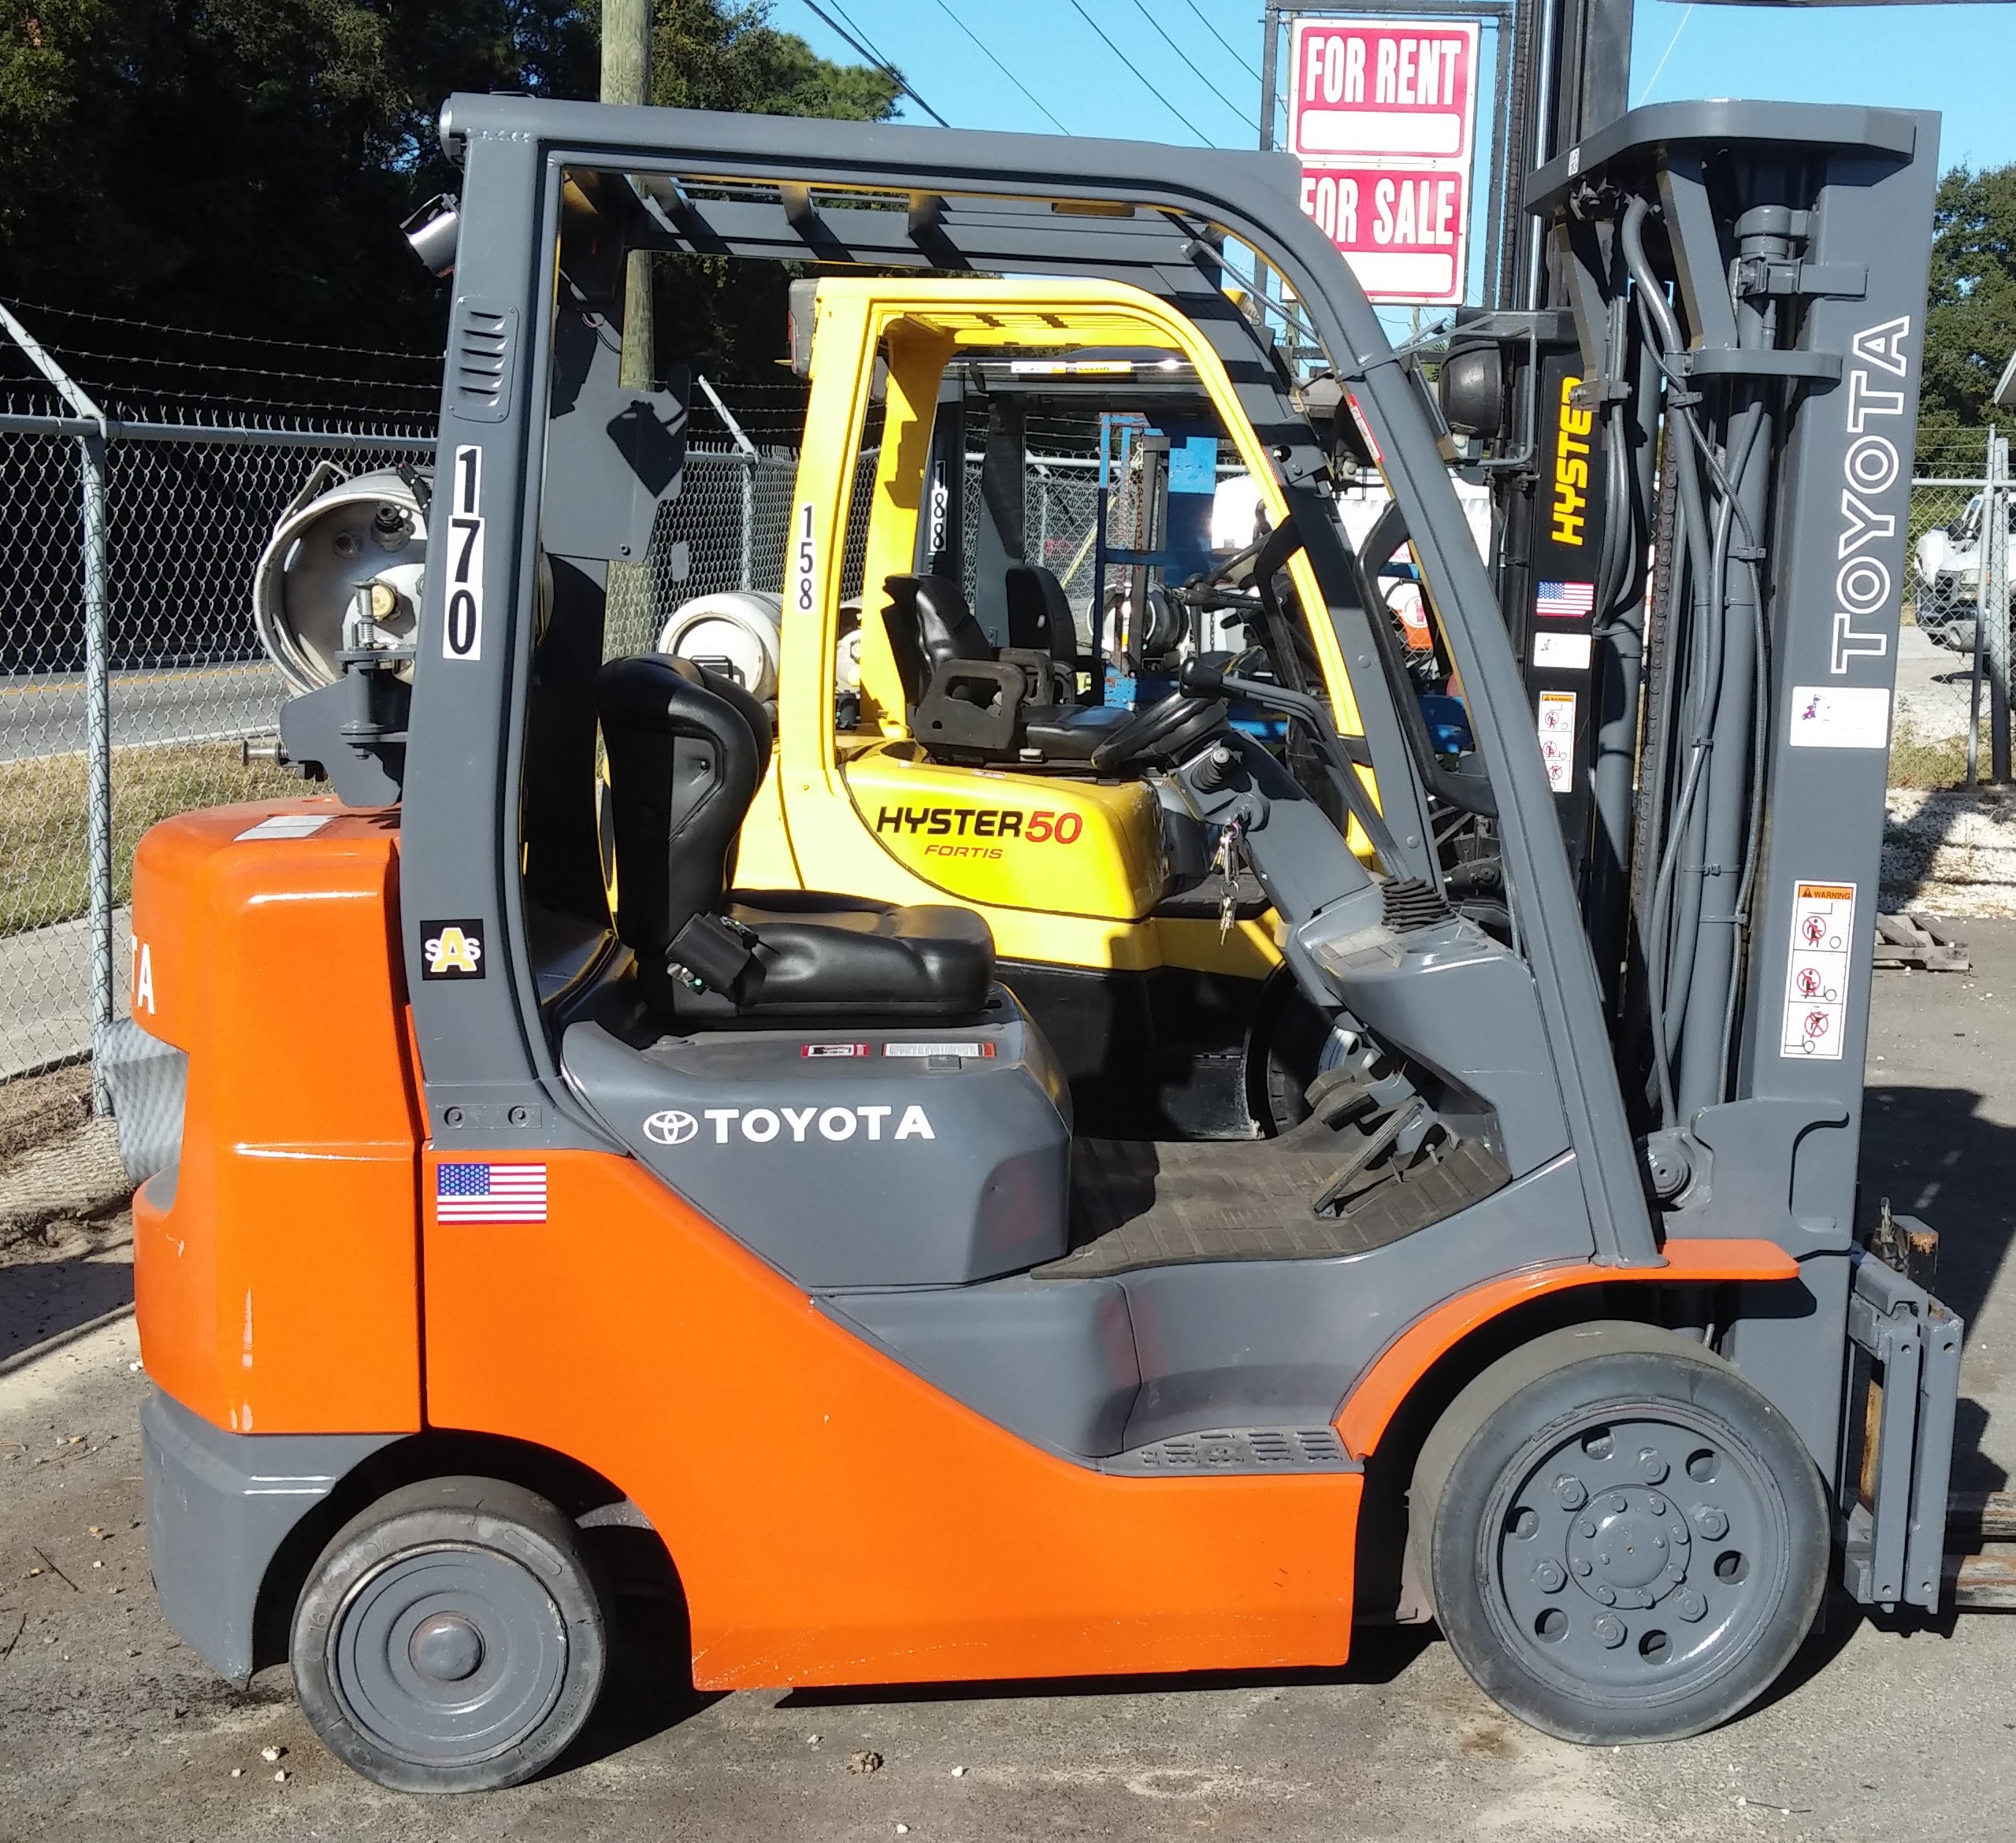 Used Forklifts For Sale in Central Florida - Used Forklift